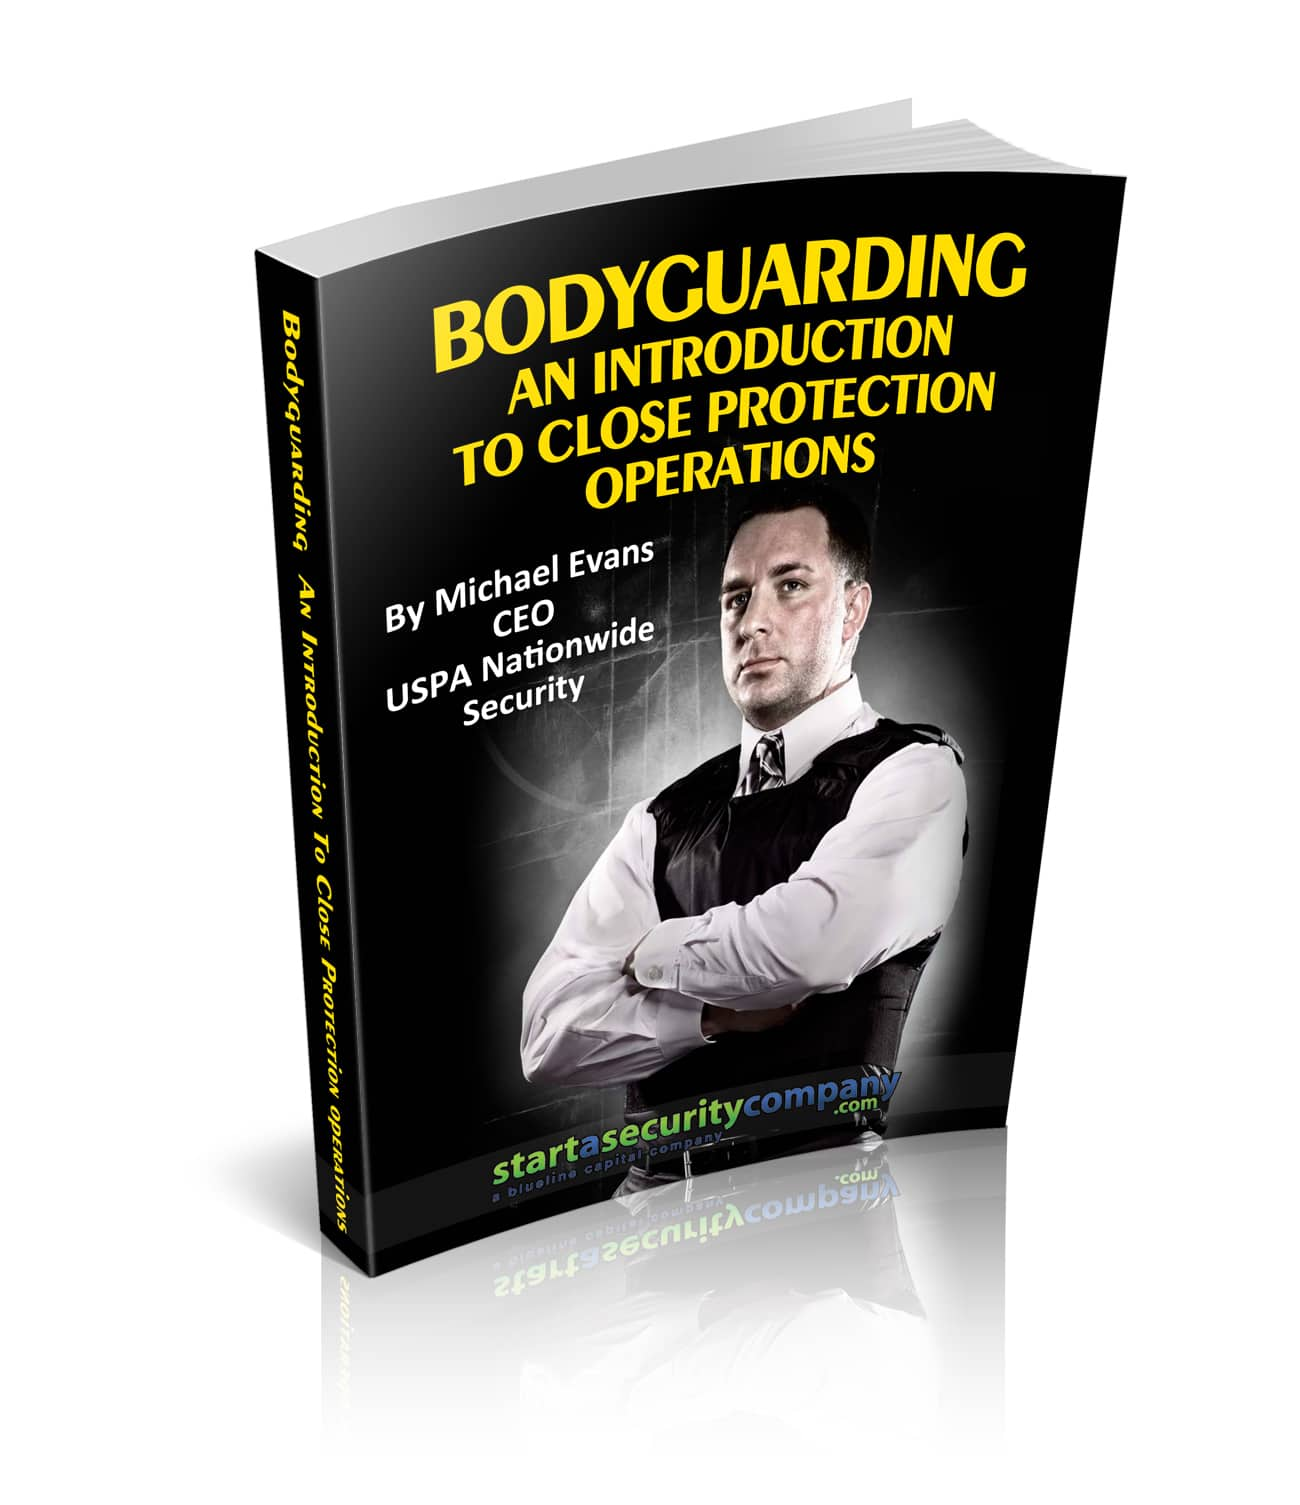 bodyguarding-an-introduction-to-close-protection-operations